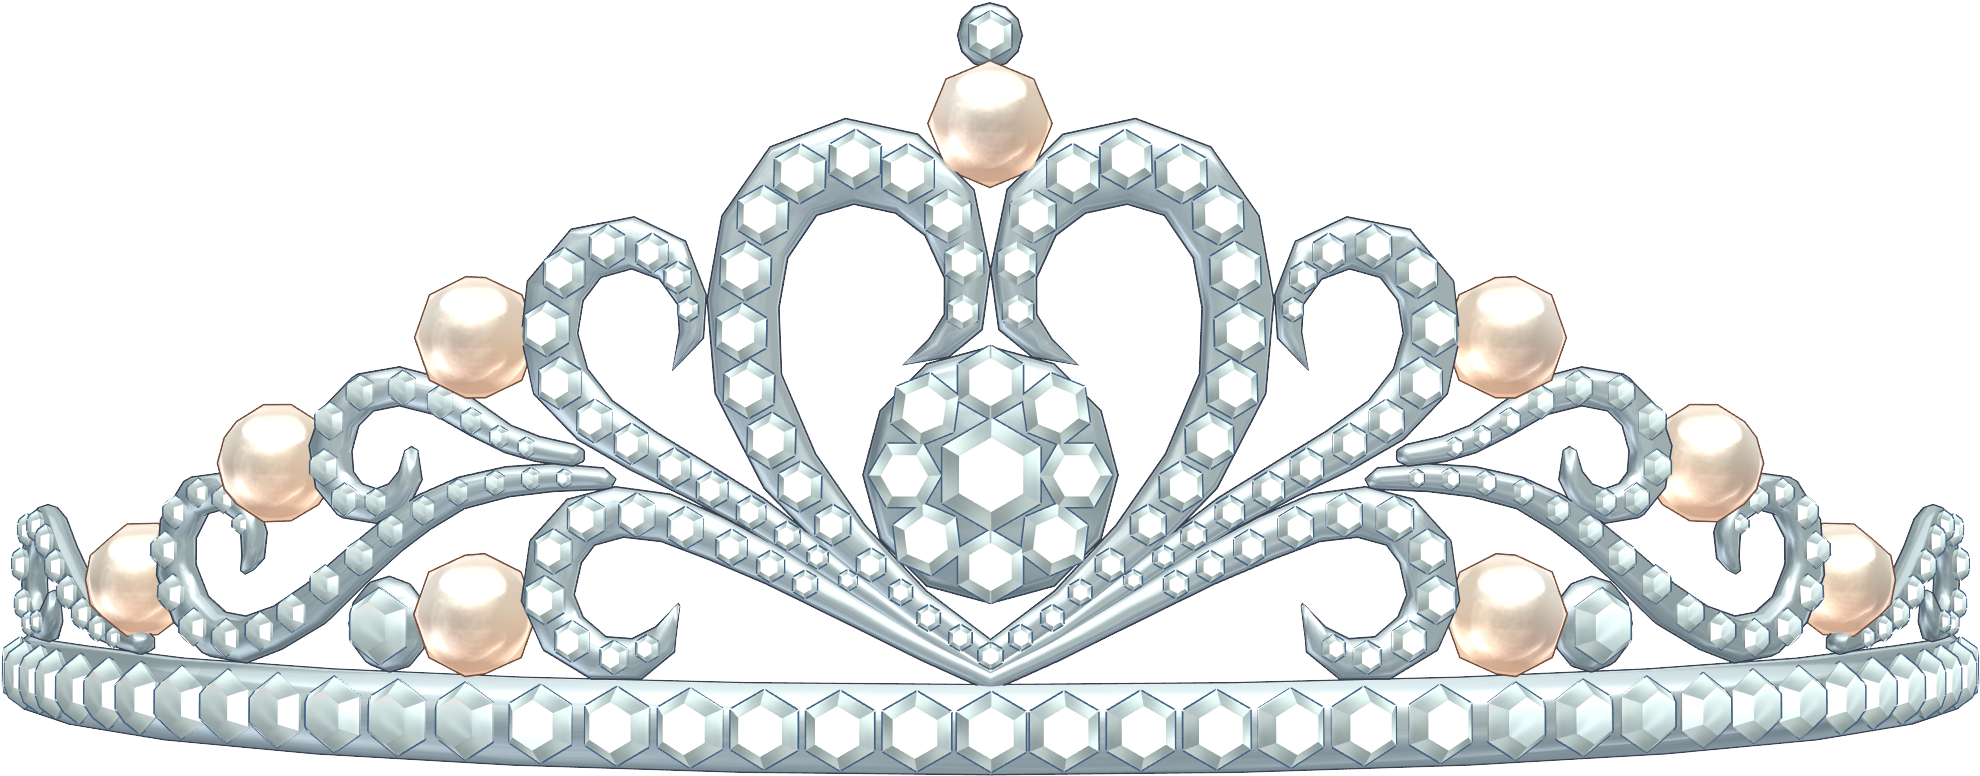 Download HD Quinceanera Crown Clipart & Quinceanera Crown.